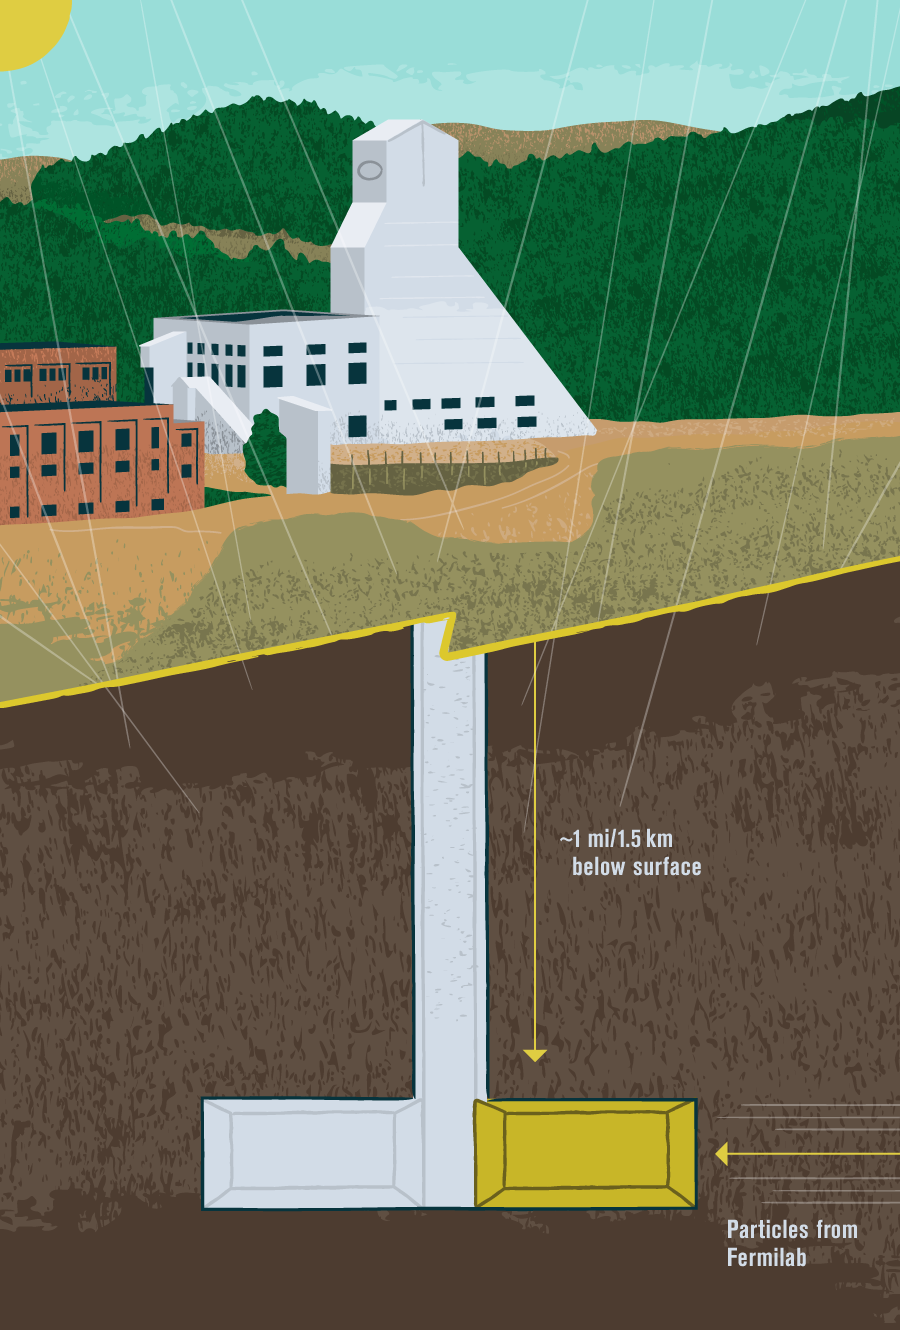 Illustration: Cosmic rays coming from above, neutrinos coming from Fermilab, and dust everywhere except in the detector